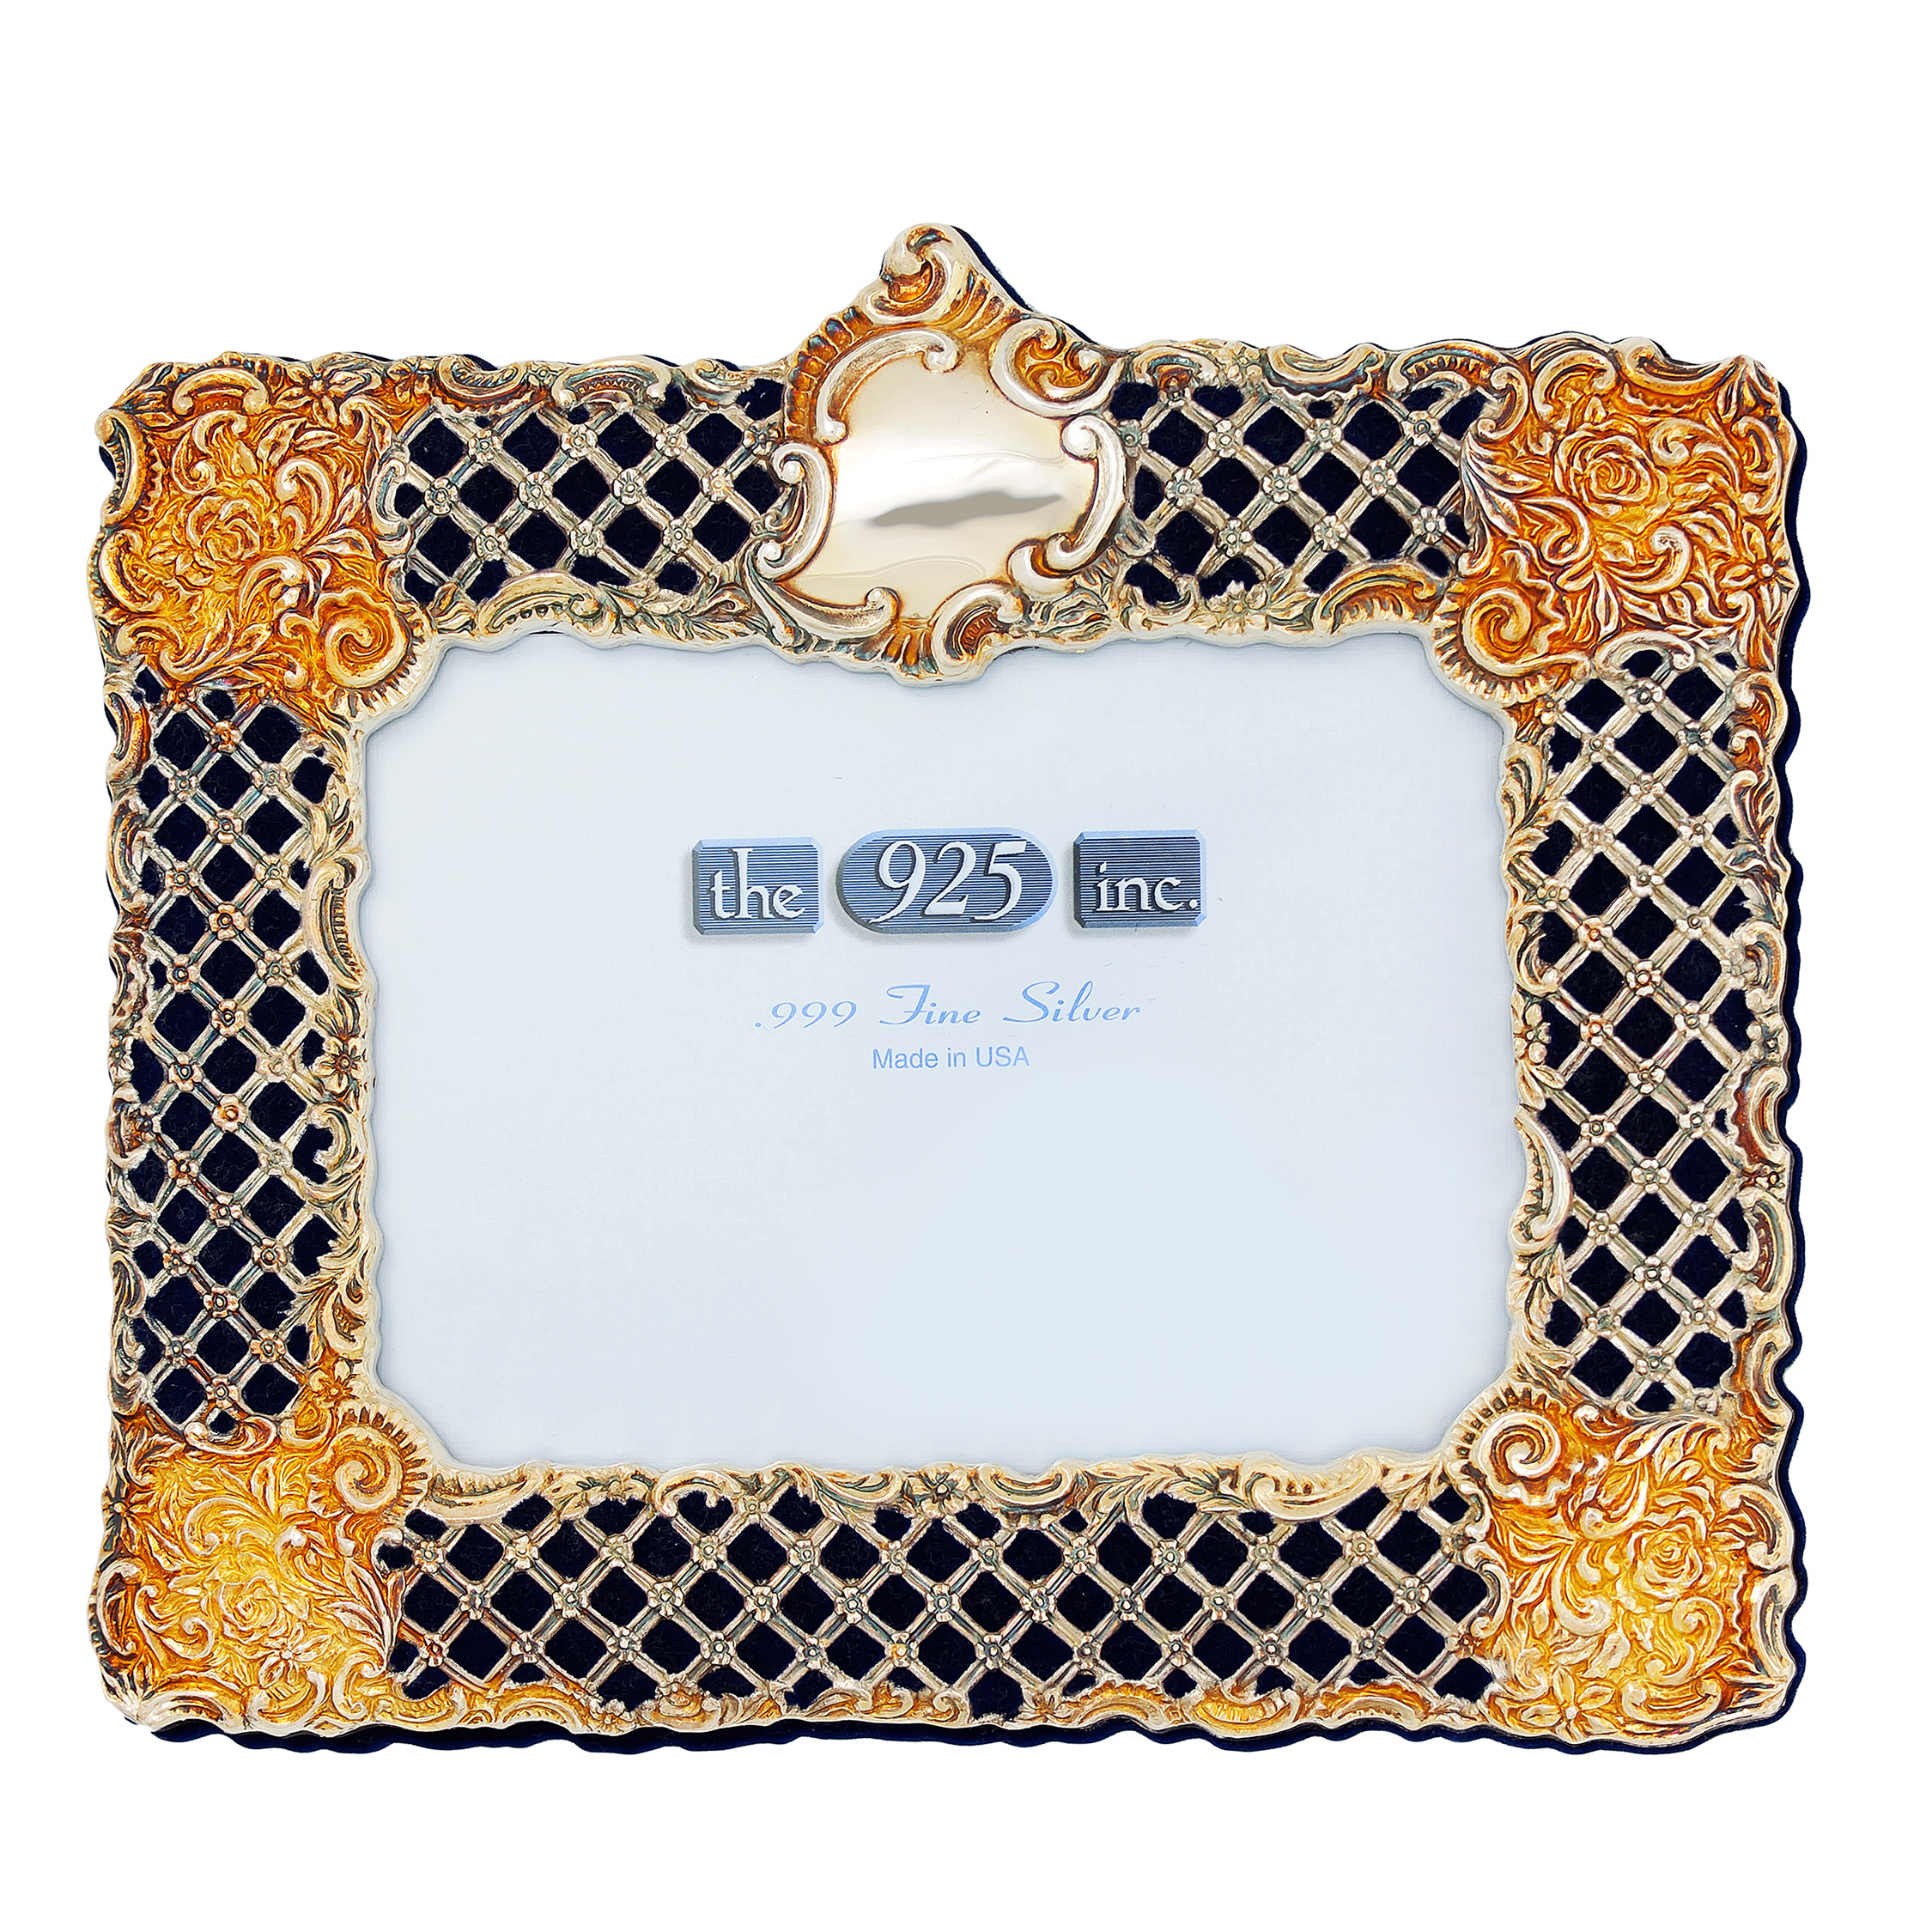 #313 Lattice - Inlay Silver Frame Image